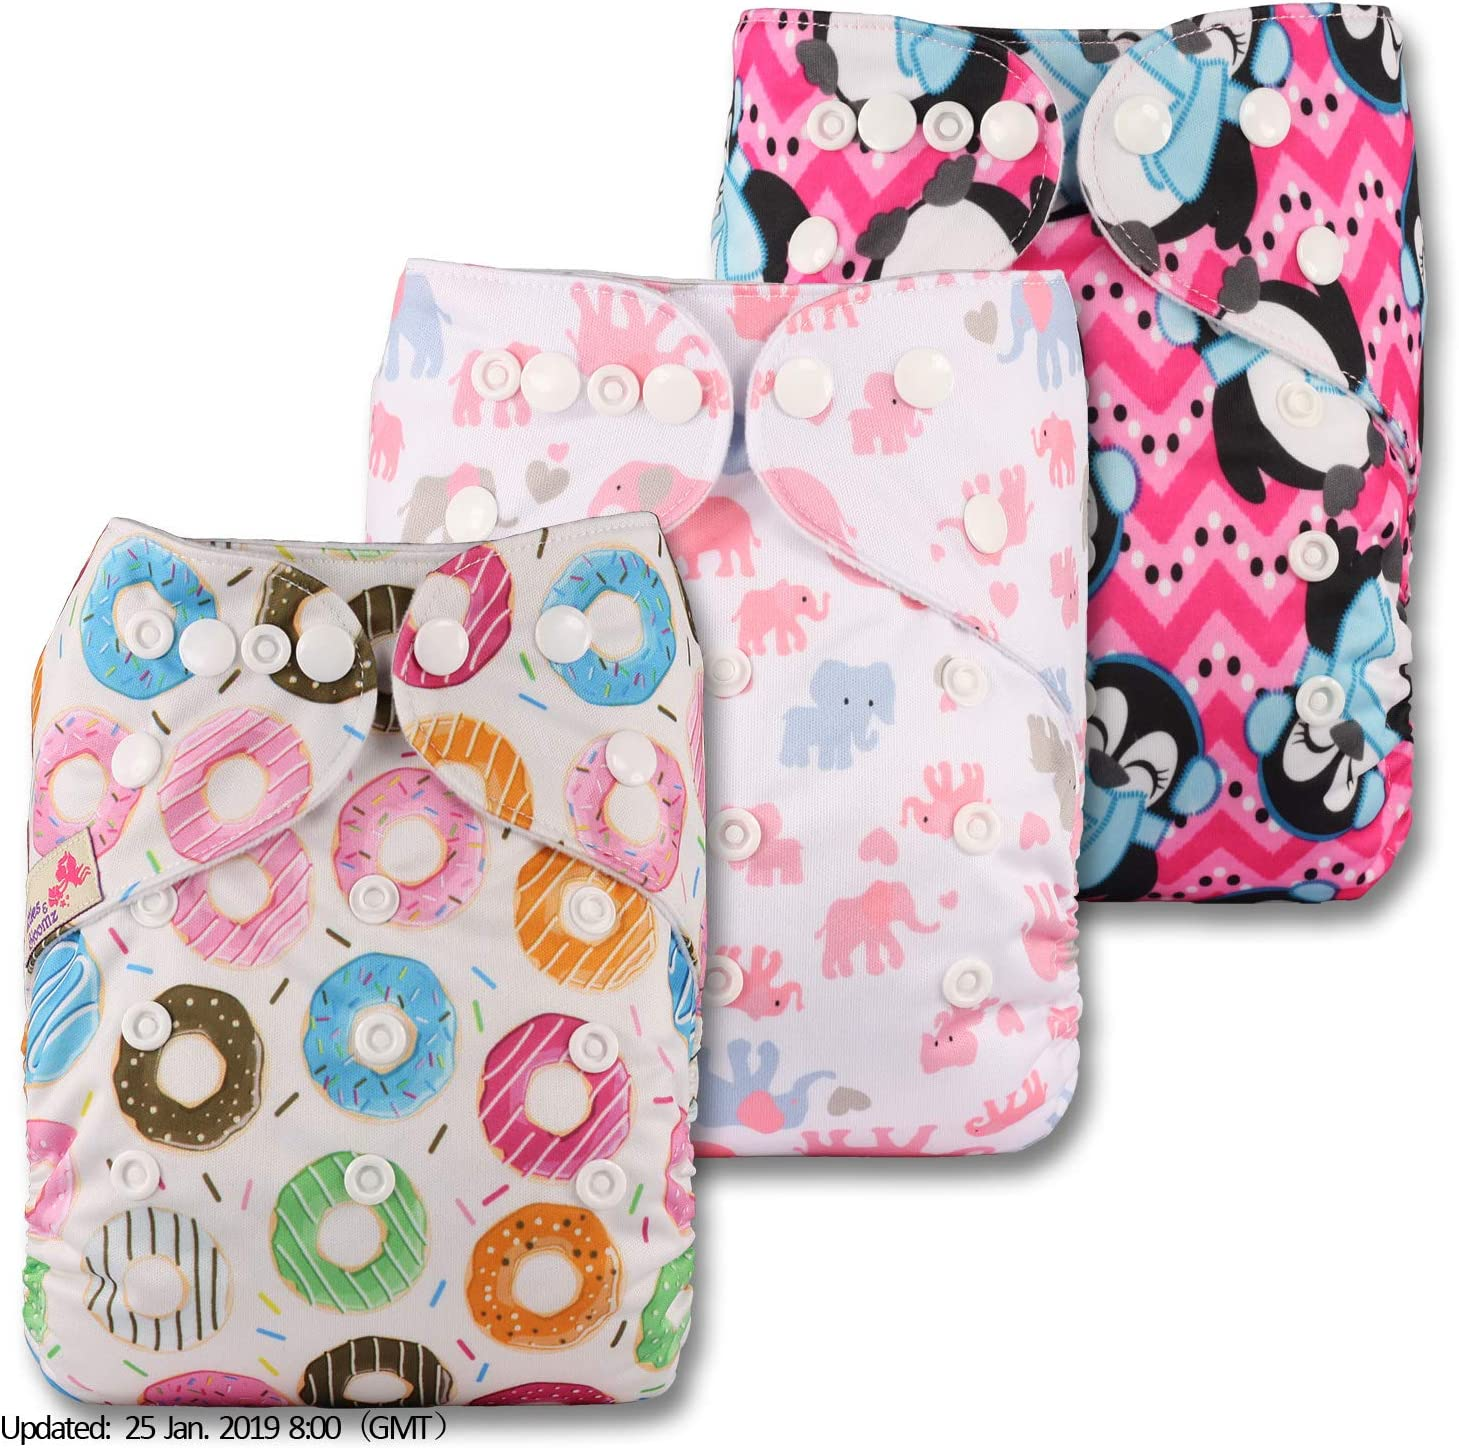 Fastener: Popper Set of 3 with 3 Bamboo Charcoal Inserts Patterns 329 Reusable Pocket Cloth Nappy Littles /& Bloomz